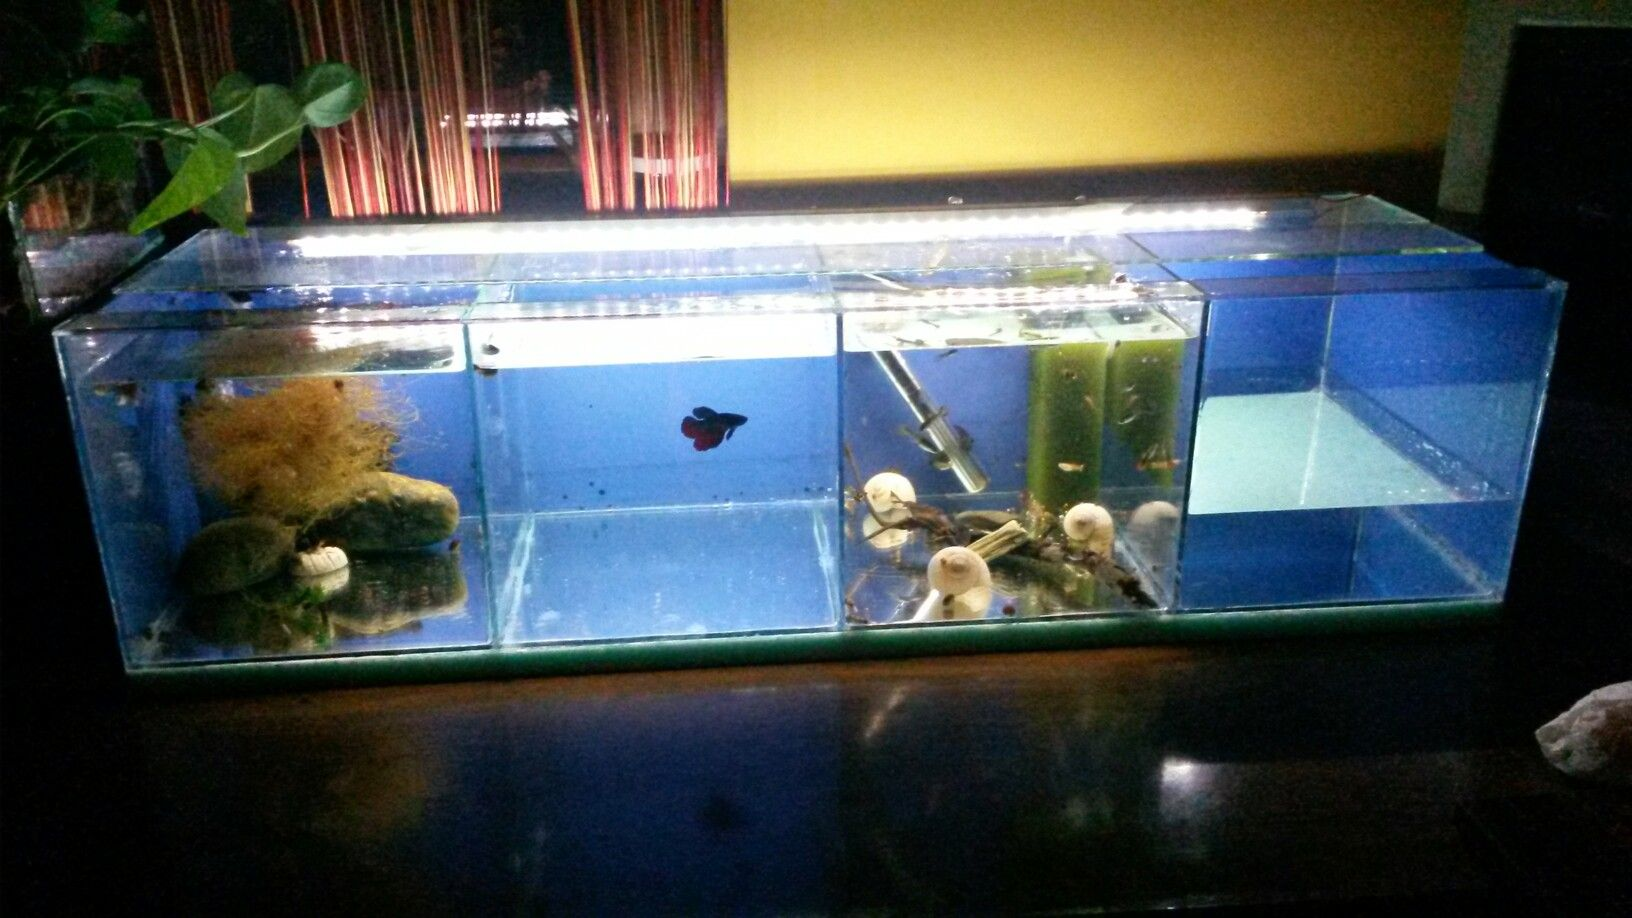 Stocked 4in1tank Tank For Guppies And Betta Fish 2 Sections For Guppies 1 Section For Betta 1 Section For Pregnant Guppies Rgb Led Str Betta Fish Betta Guppy